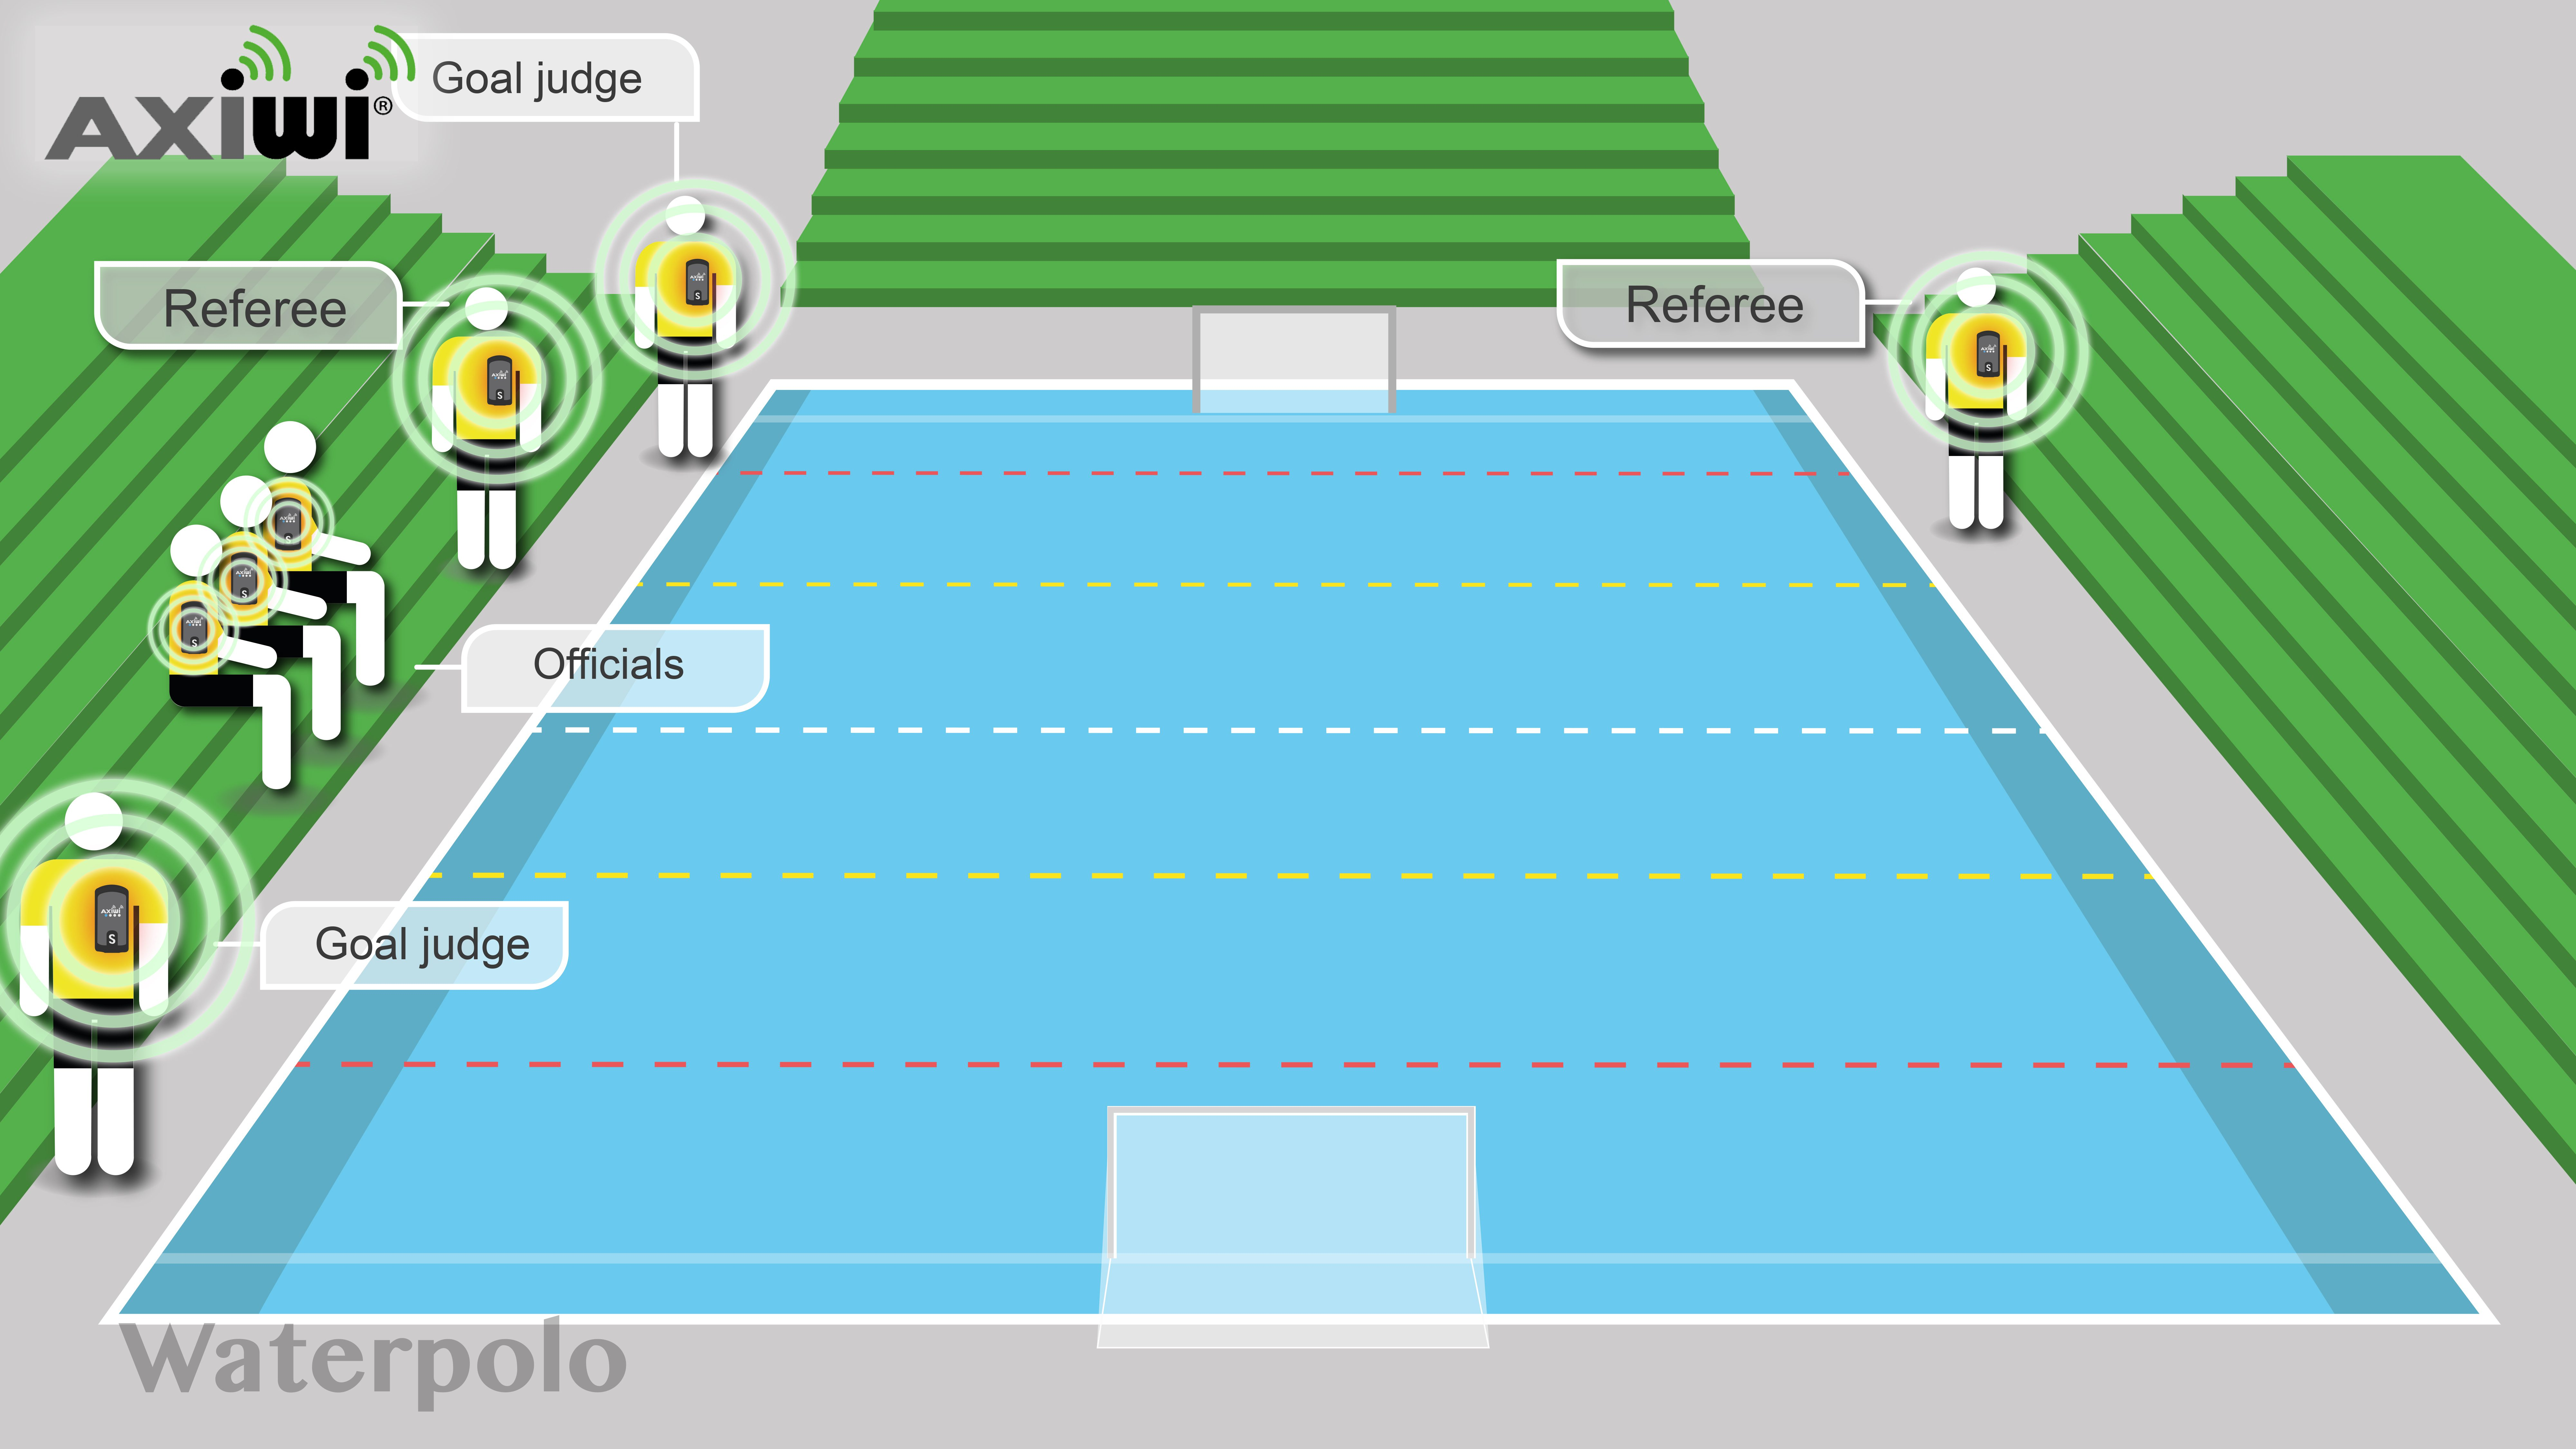 axiwi-wireless-referee-communication-system-water-polo